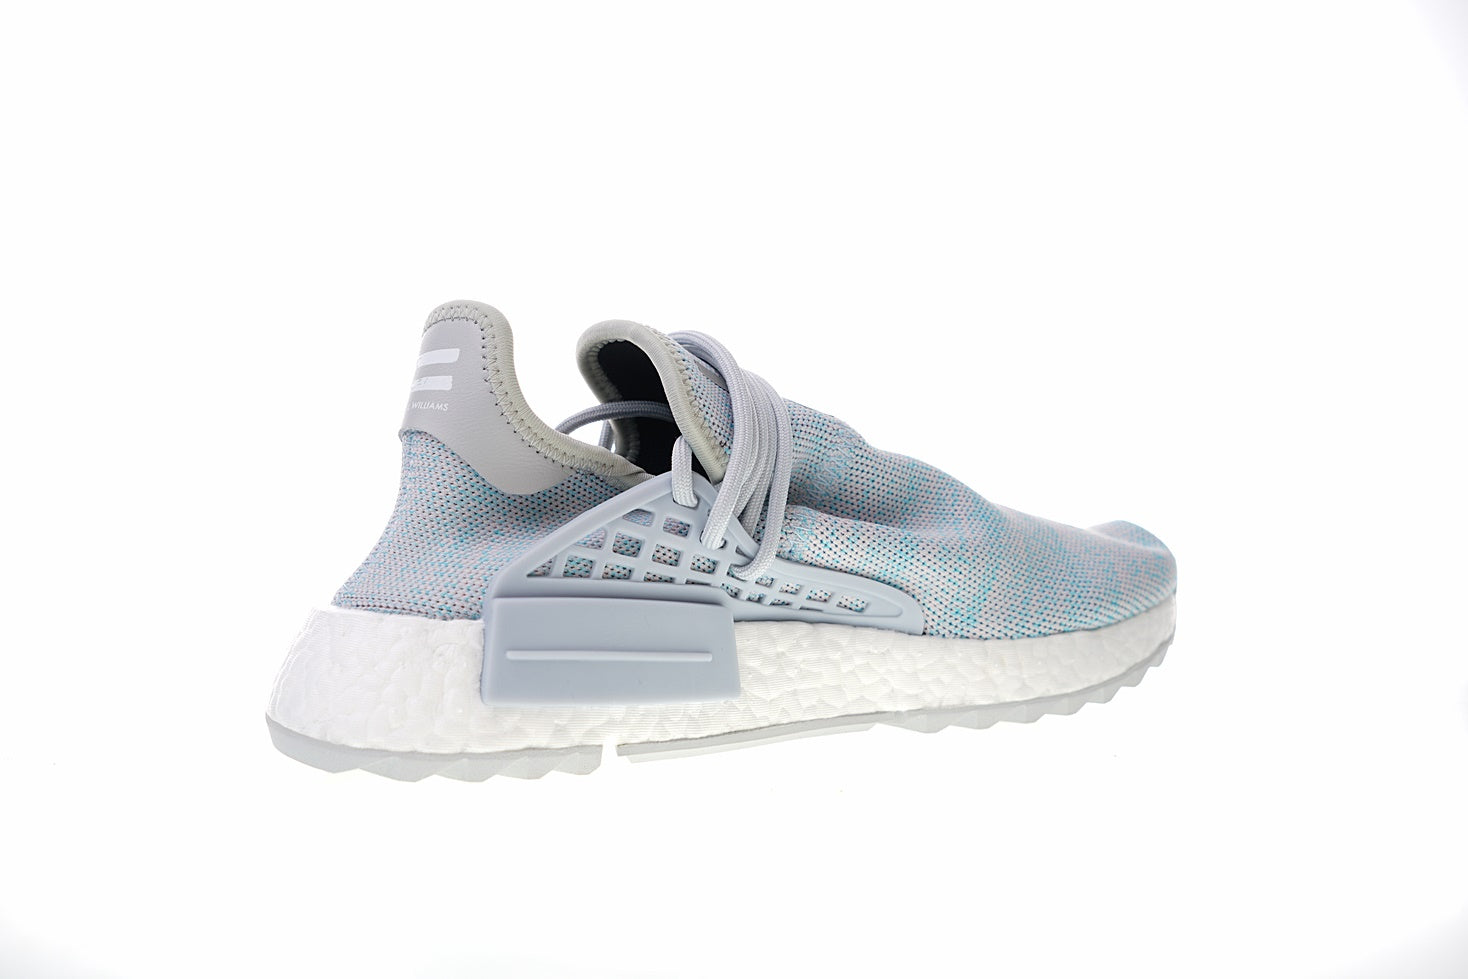 wholesale dealer d413f 2ace3 BBC x Pharrell x Adidas NMD Human Race Trail